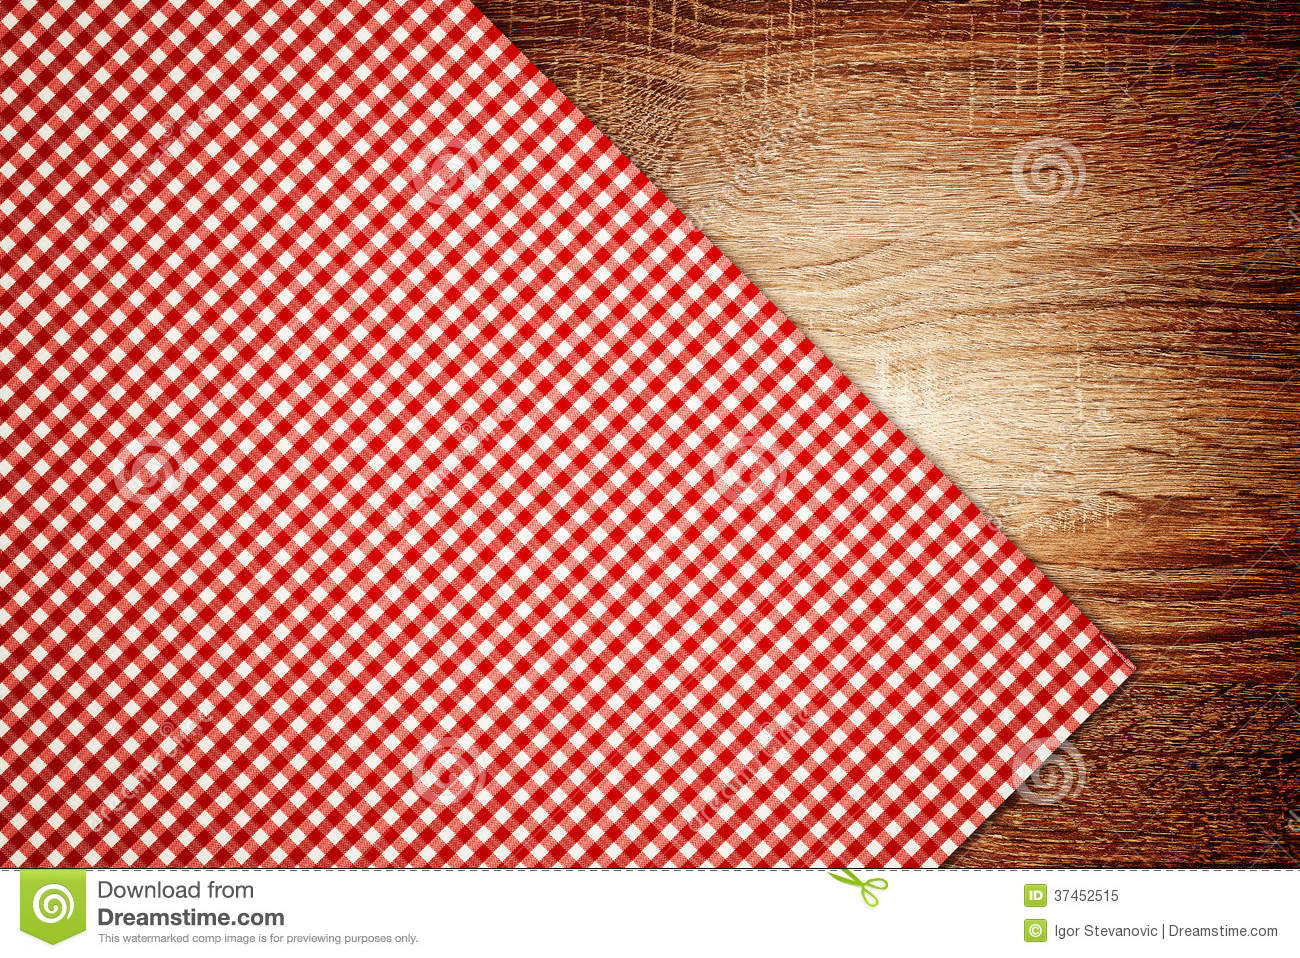 Table cloth kitchen napkin on wooden background royalty free stock